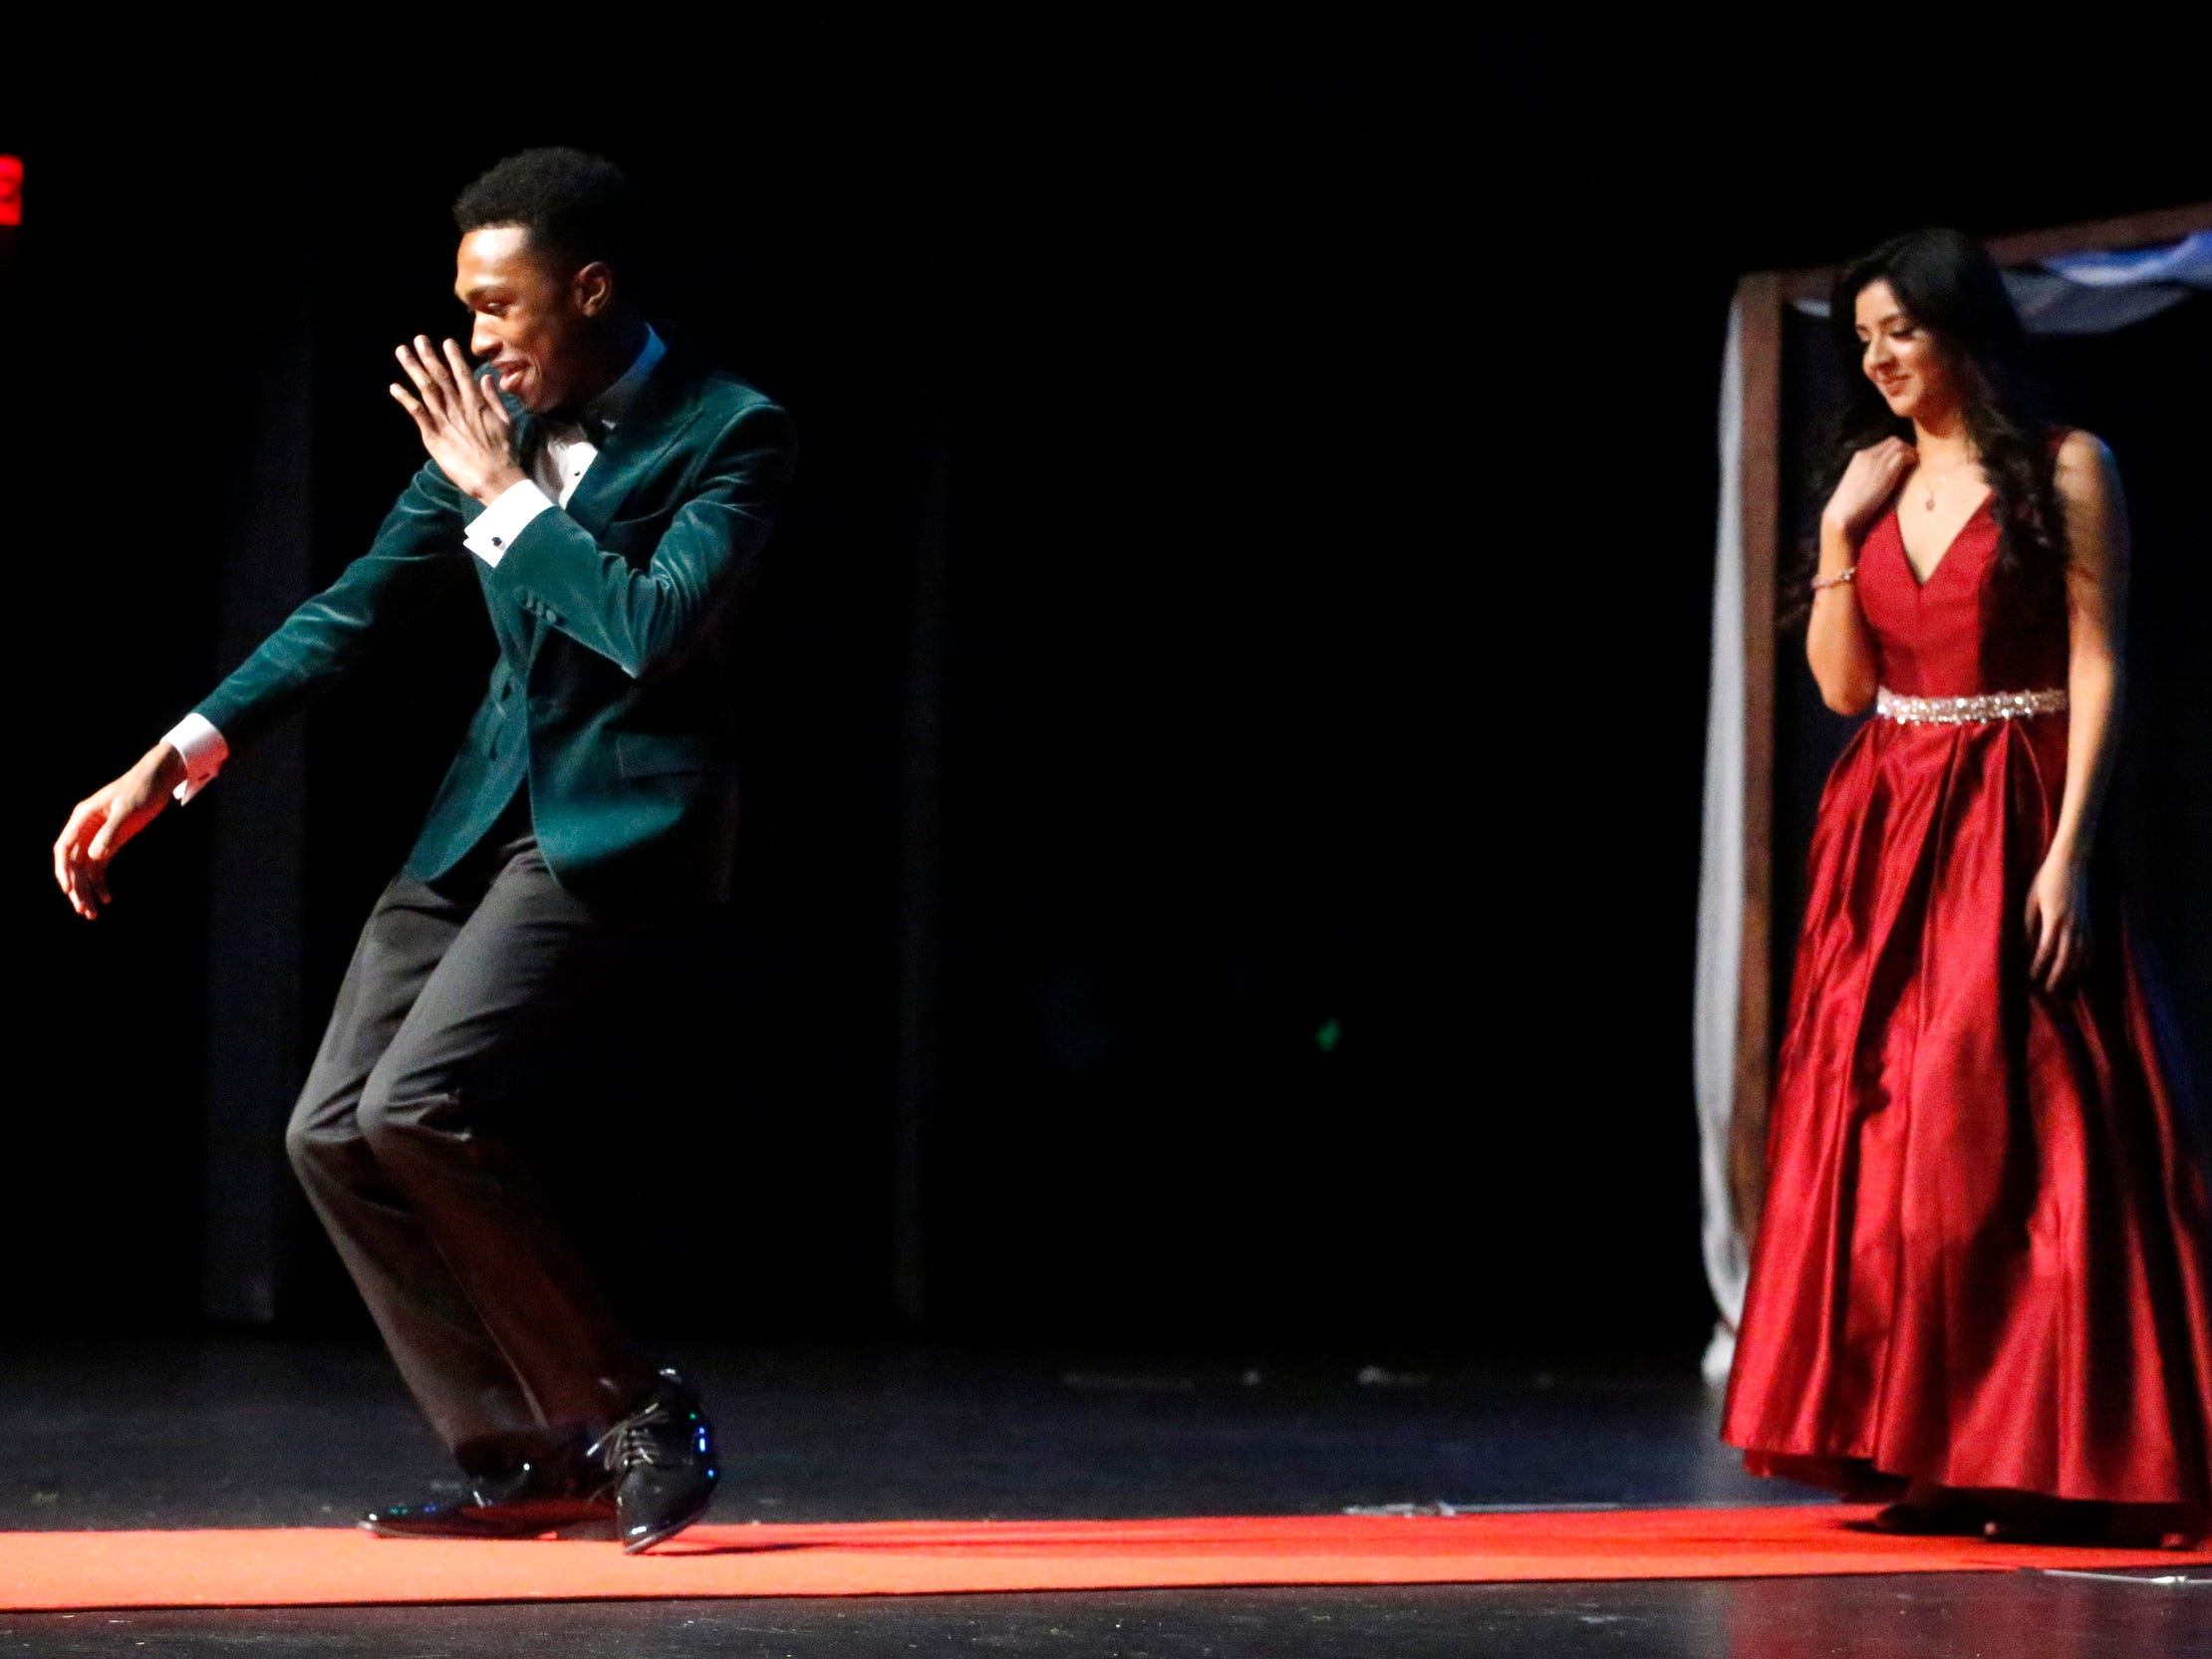 Reggie Stuart dances down to the end of the runway after Yadira Nieto shows off her dress during the Siegel Prom Fashion show on Thursday, Feb. 14, 2019.